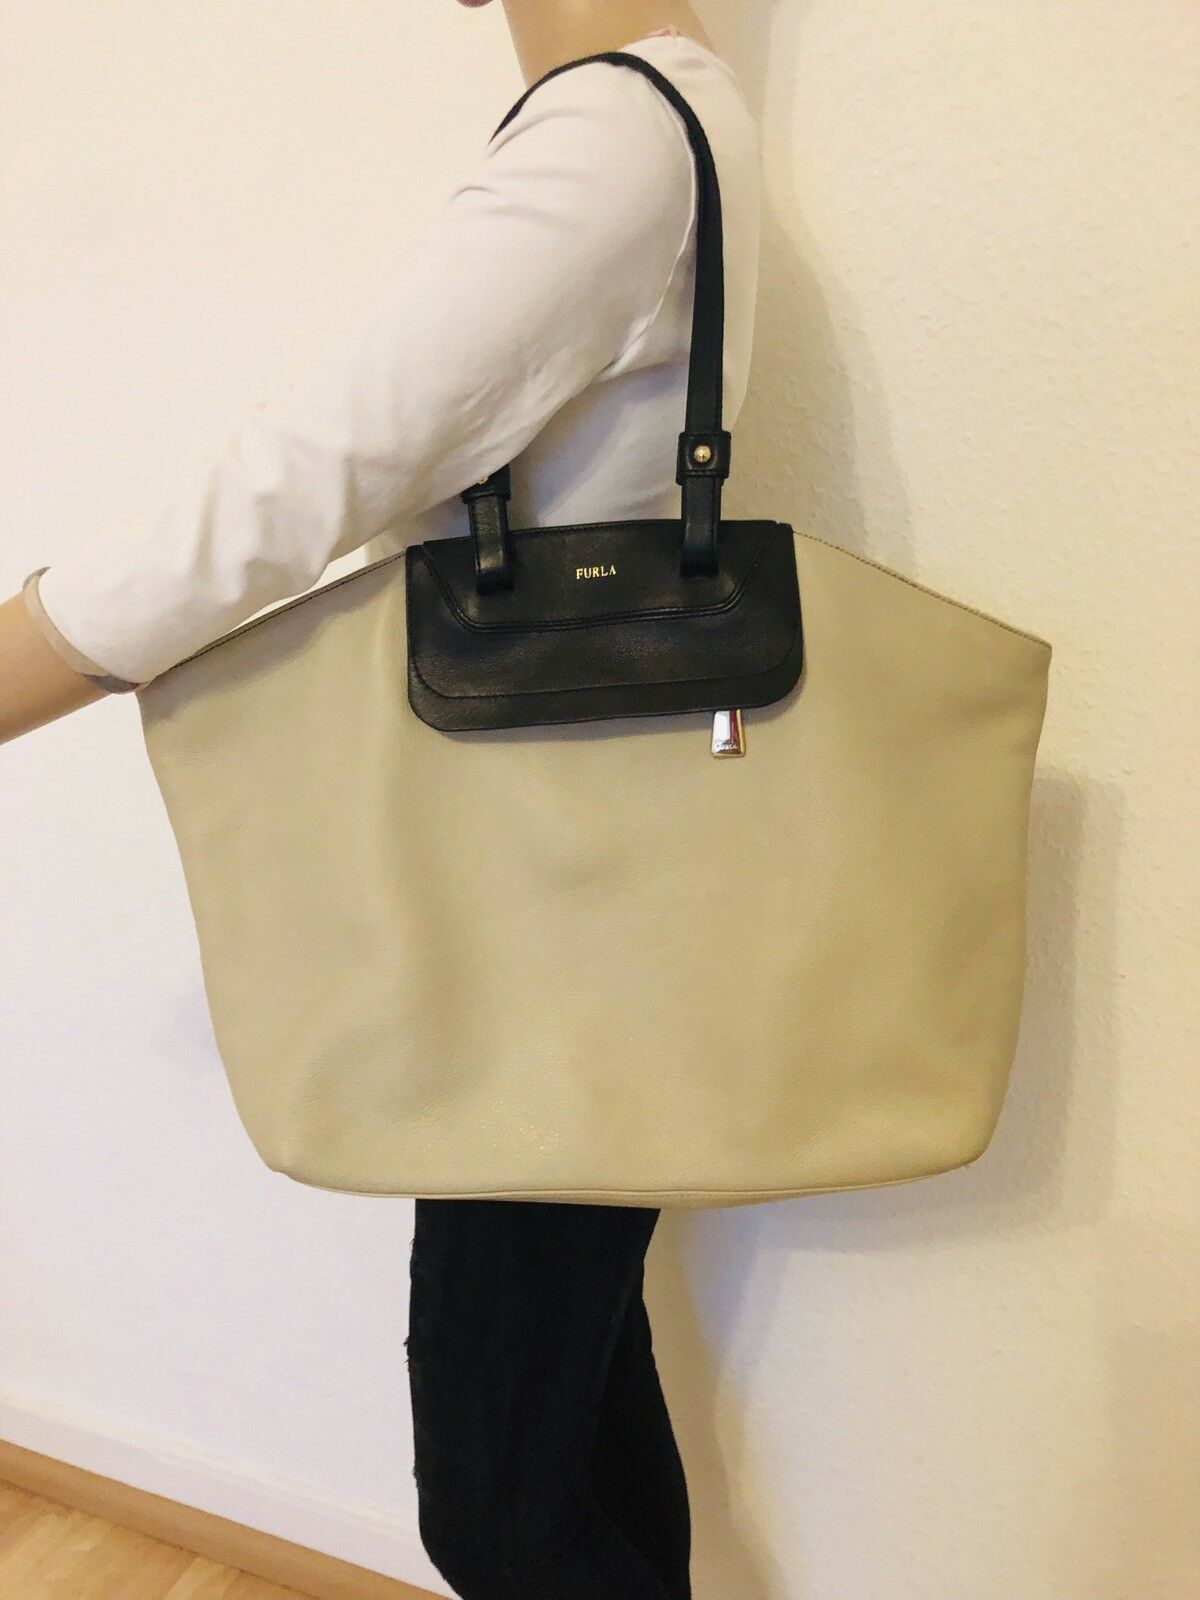 769e50e98ea52 Furla Damen Tasche Bag Purse Shopper Beige Braun Braun Braun Leder Leather  Kalbsleder f05574